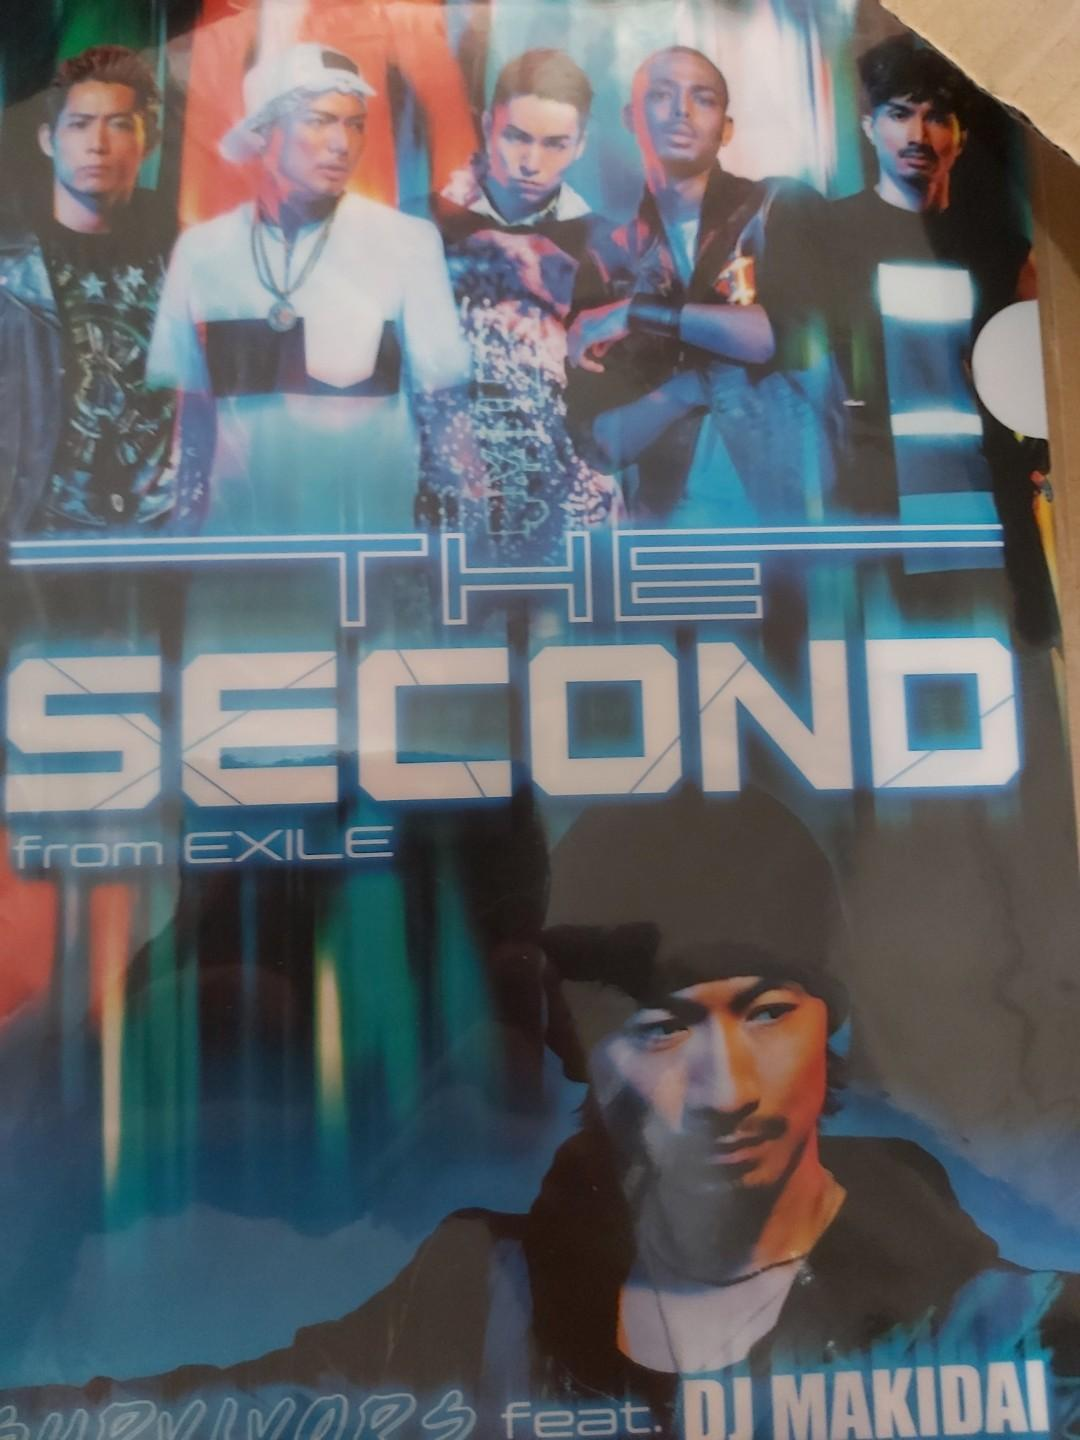 THE SECOND from EXILE file